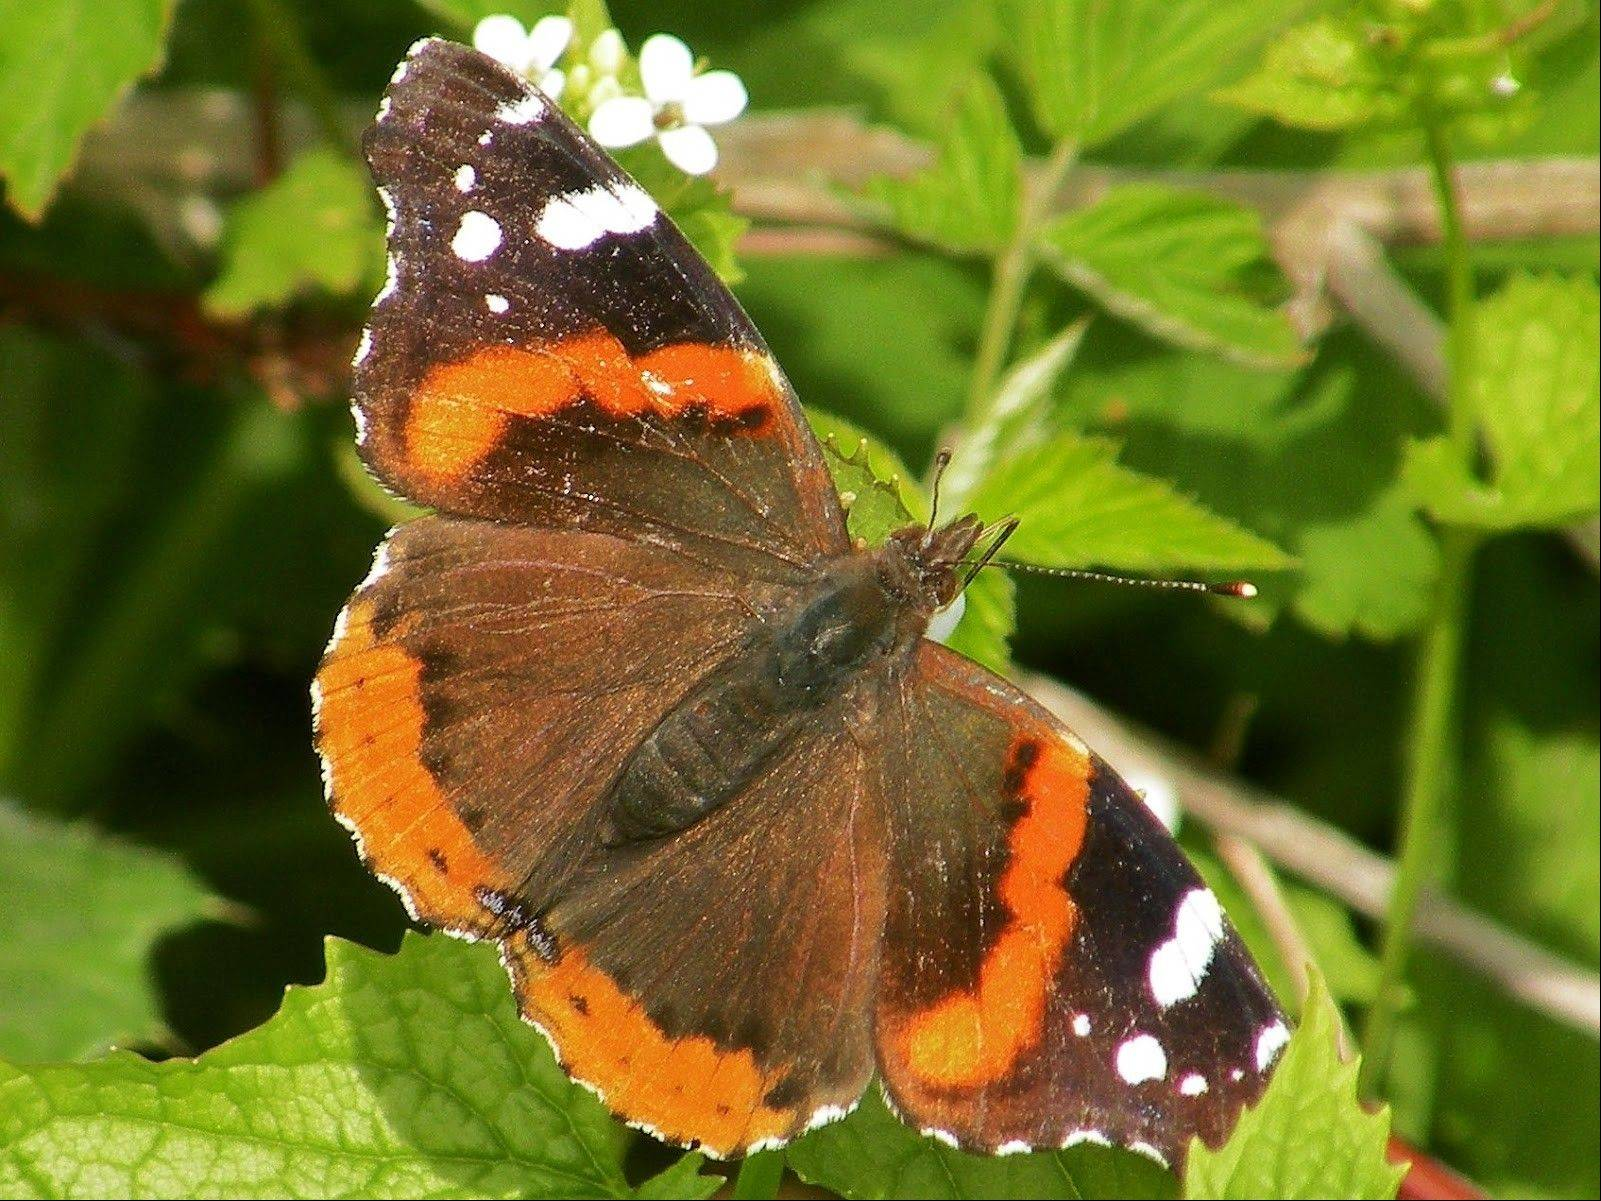 A population boom has the suburbs awash in a sea of Red Admiral butterflies. Butterfly expert Doug Taron, a steward of the Bluff Spring Fen in Elgin, estimates that the population is 10 times higher than in most years.